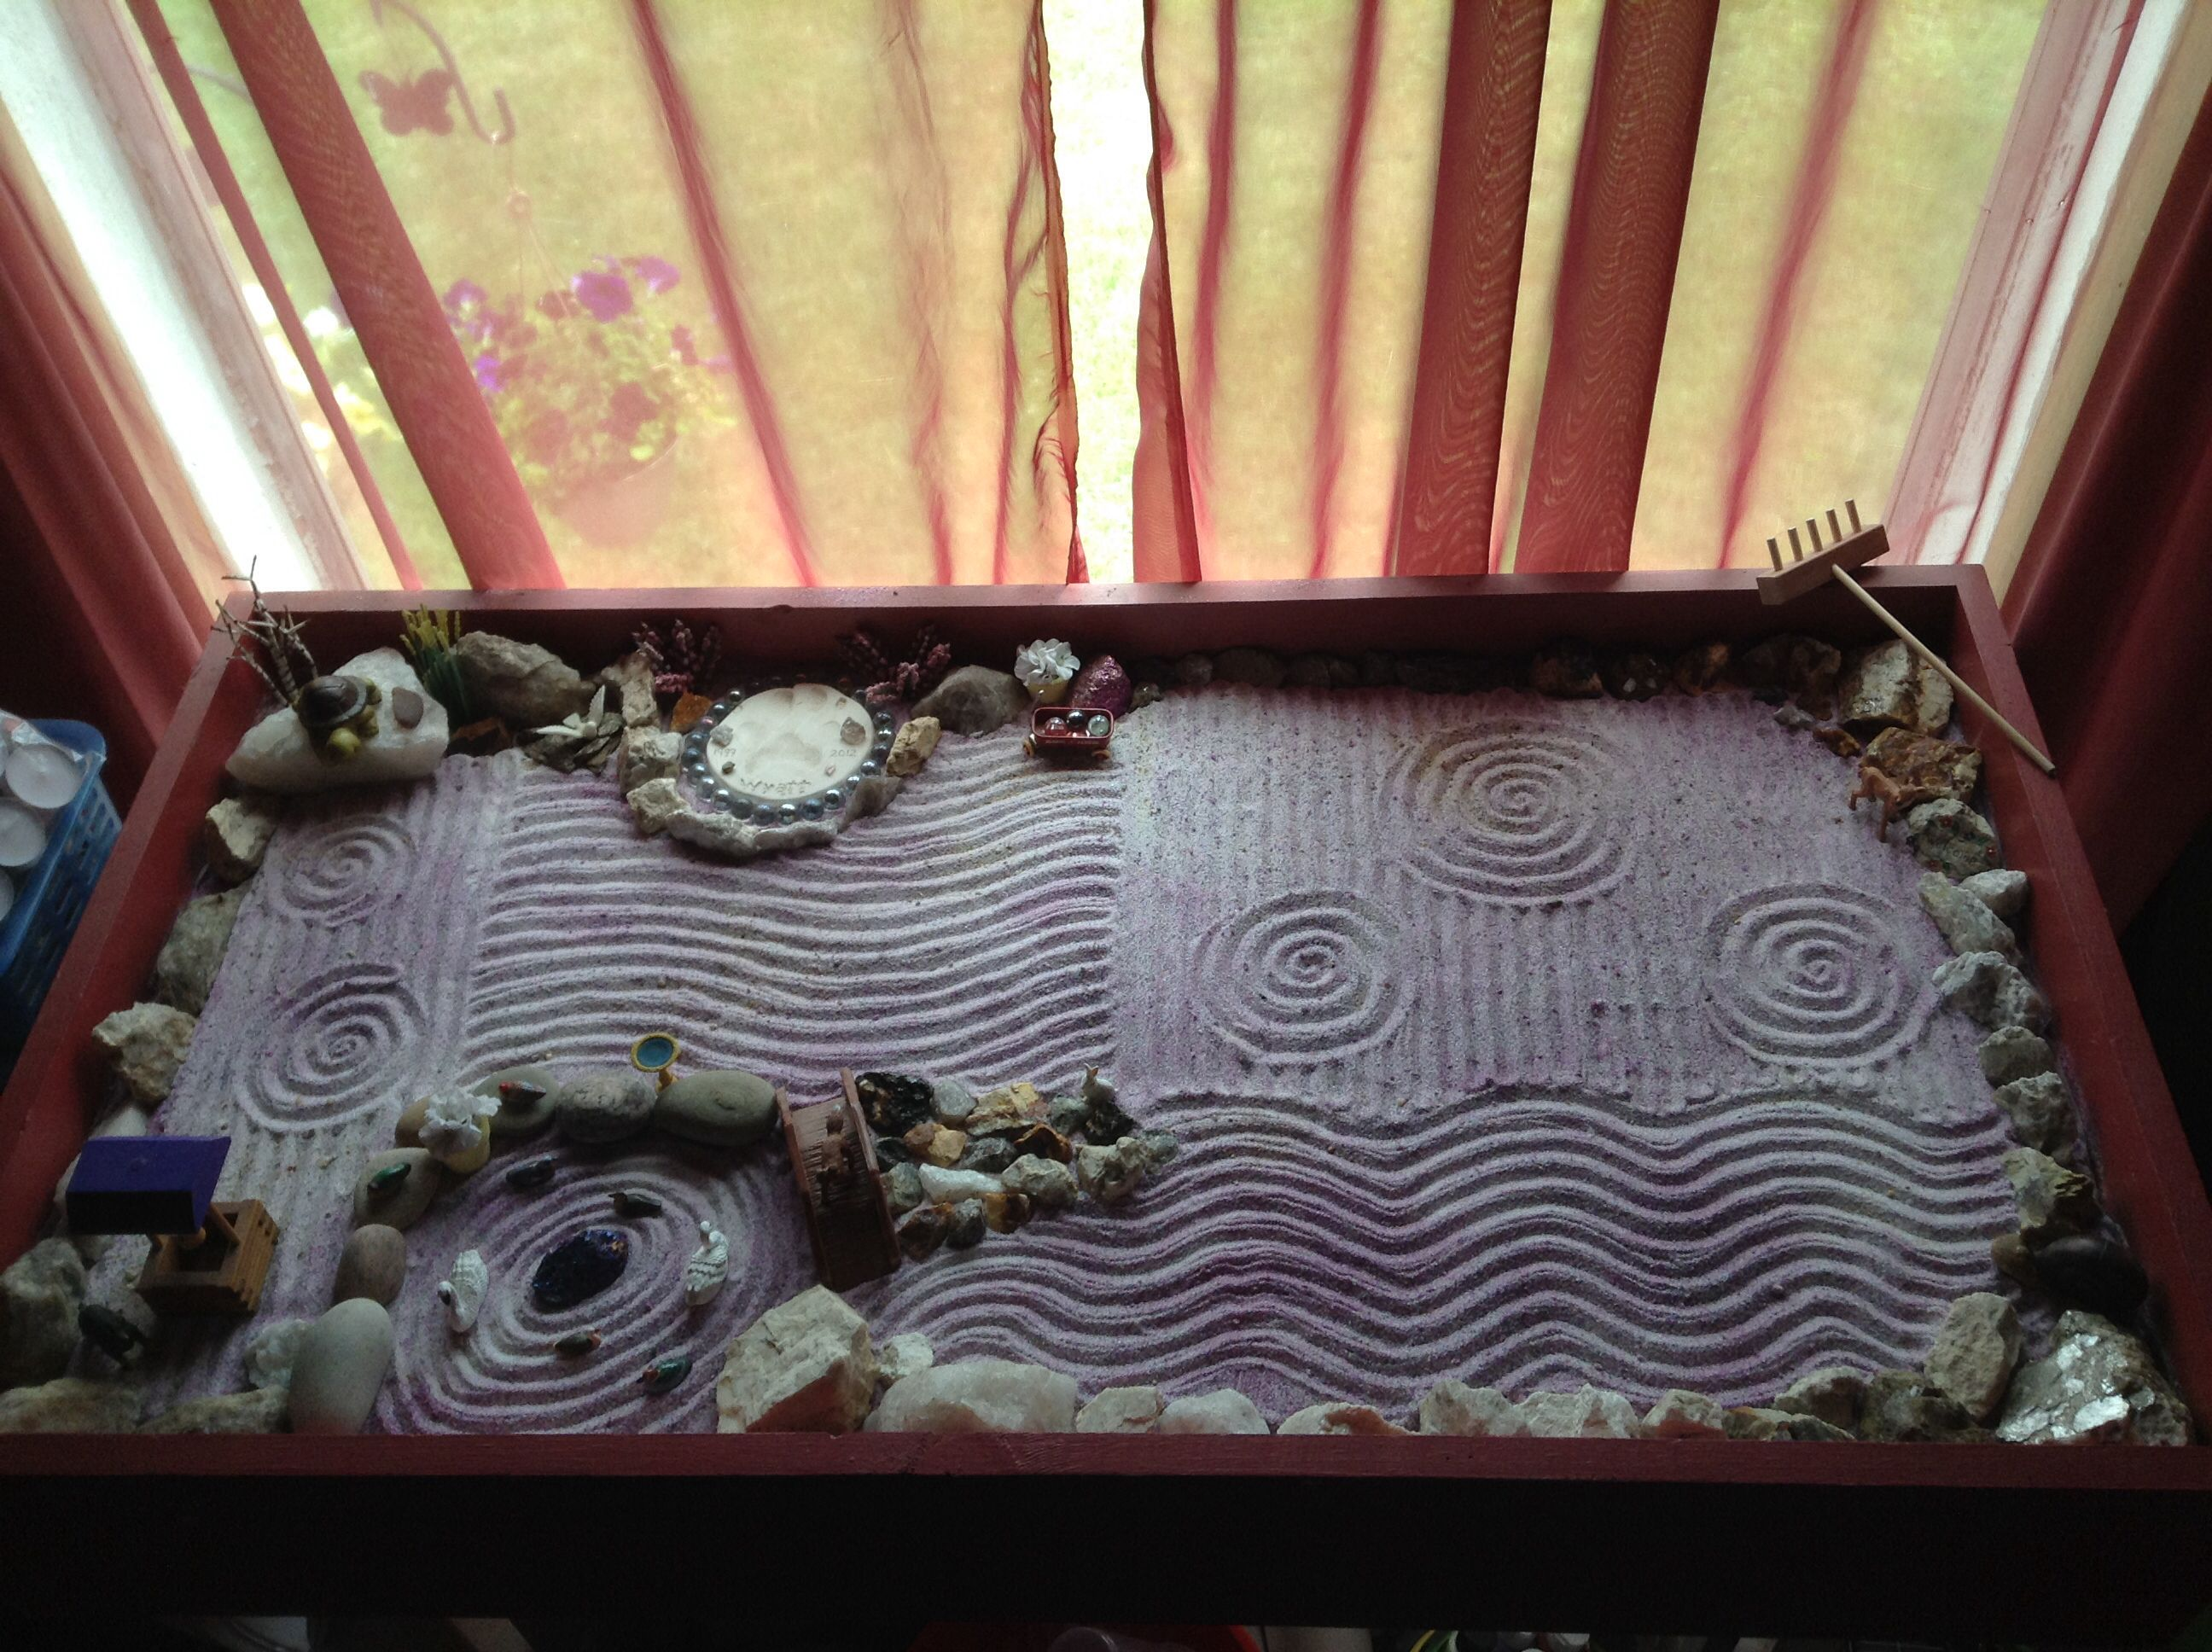 my homemade zen garden. so easy. made from old shelves & plywood